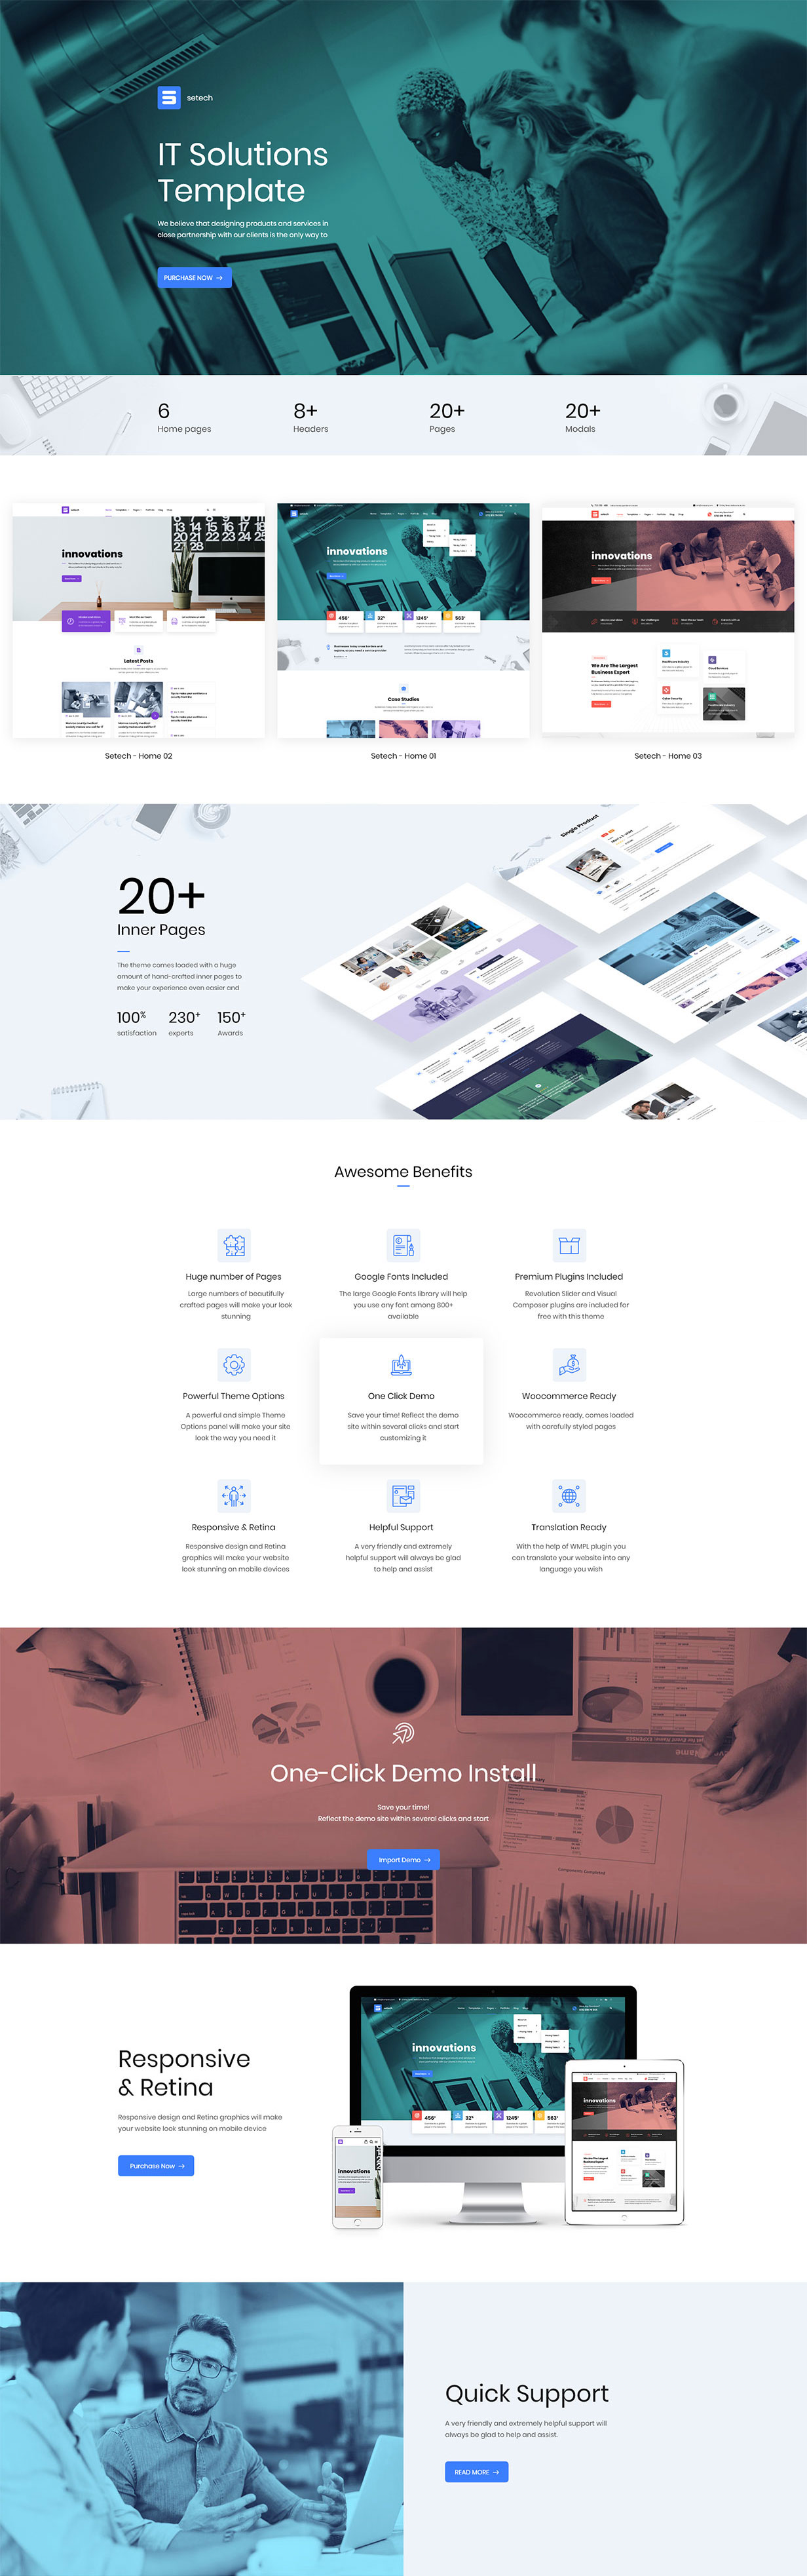 Setech - IT Services and Solutions WordPress Theme Setech – IT Services and Solutions WordPress Theme Nulled Free Download setech it services and solutions wordpress theme